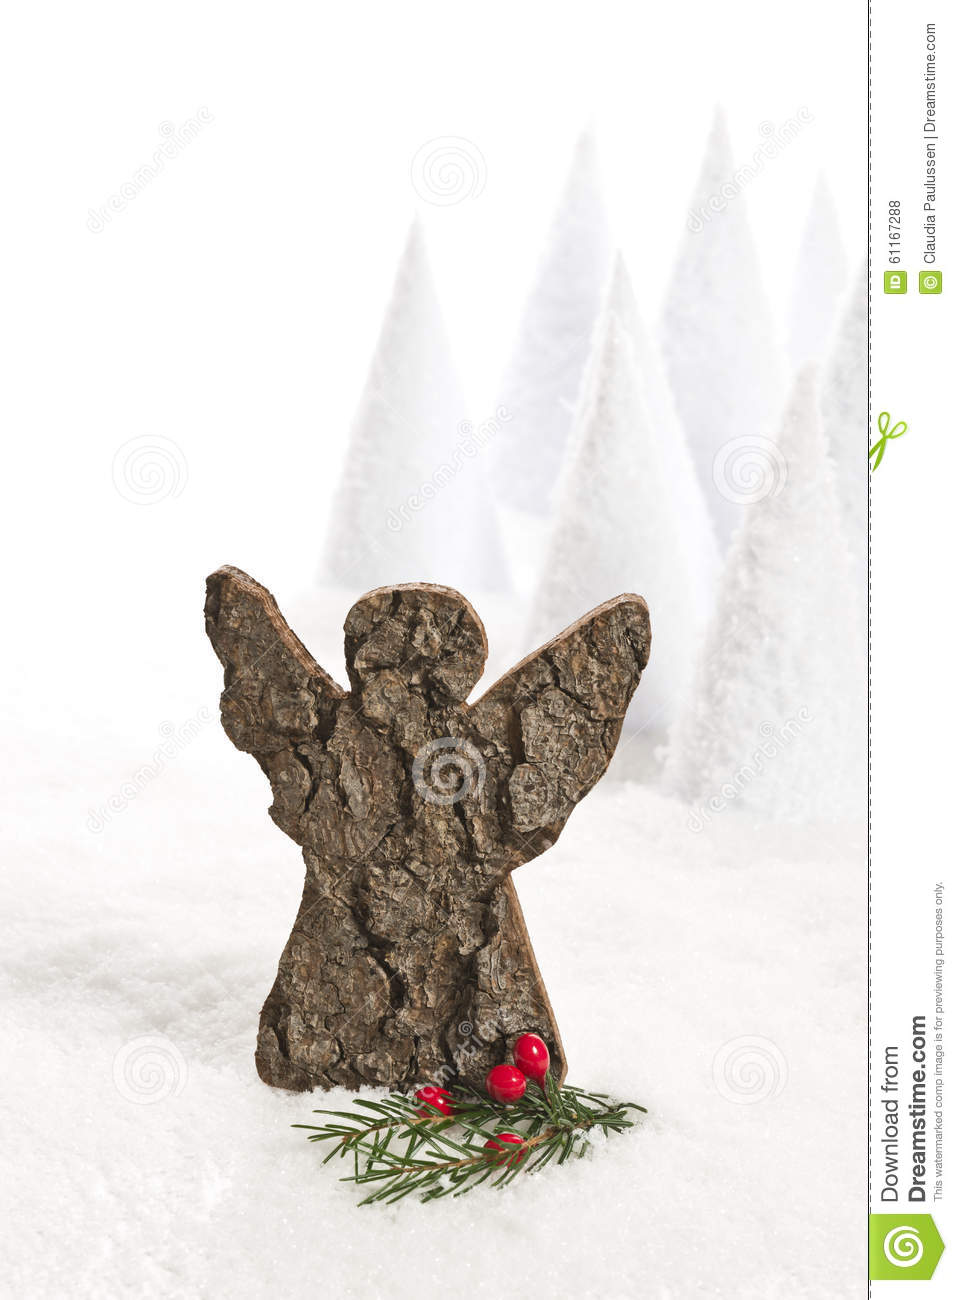 Christmas angle stock photo image 61167288 for Artificial snow decoration